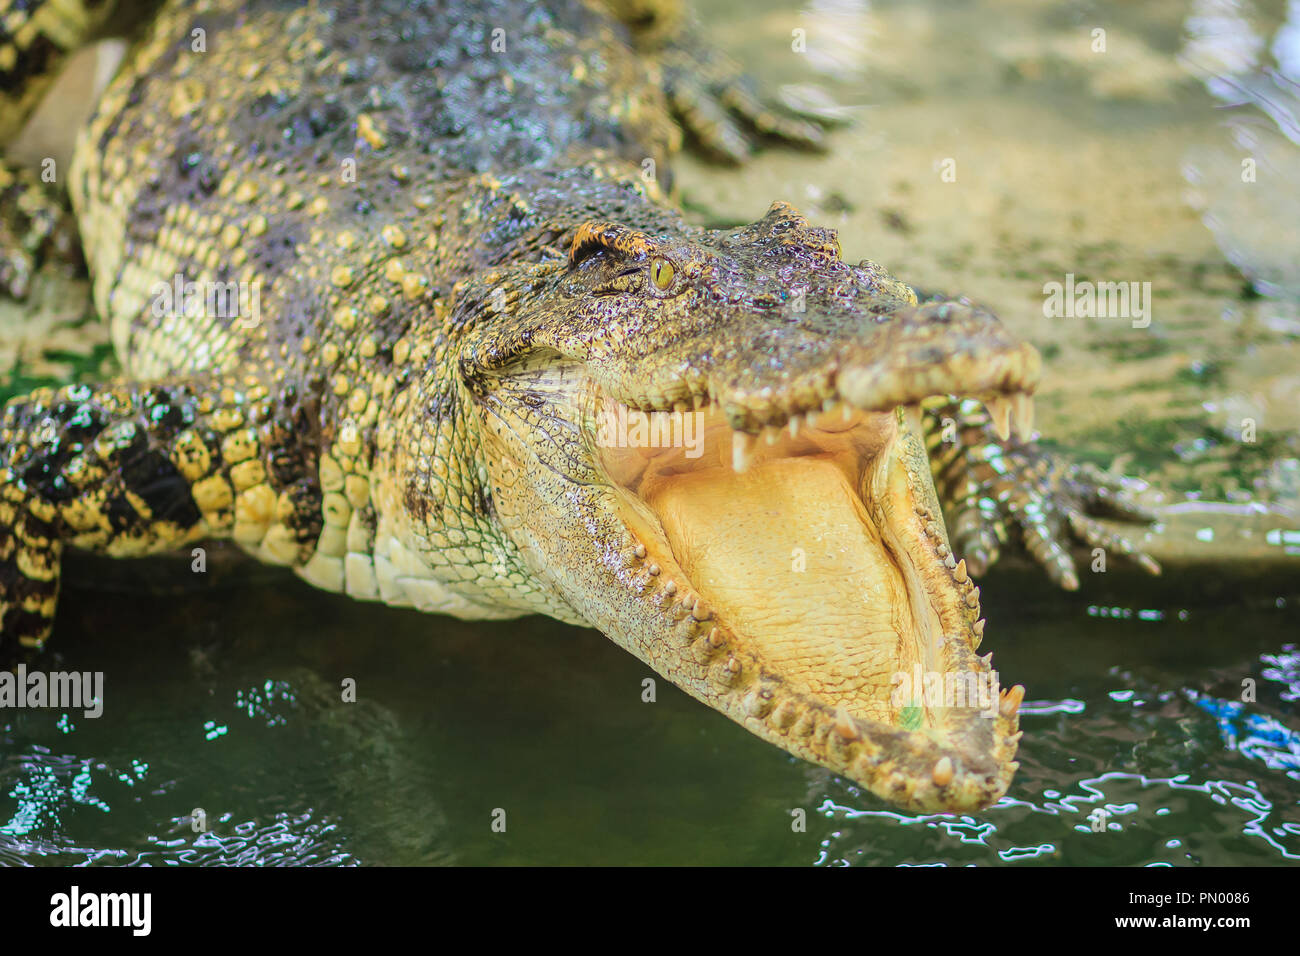 Crocodile open jaws ready to strike - Stock Image